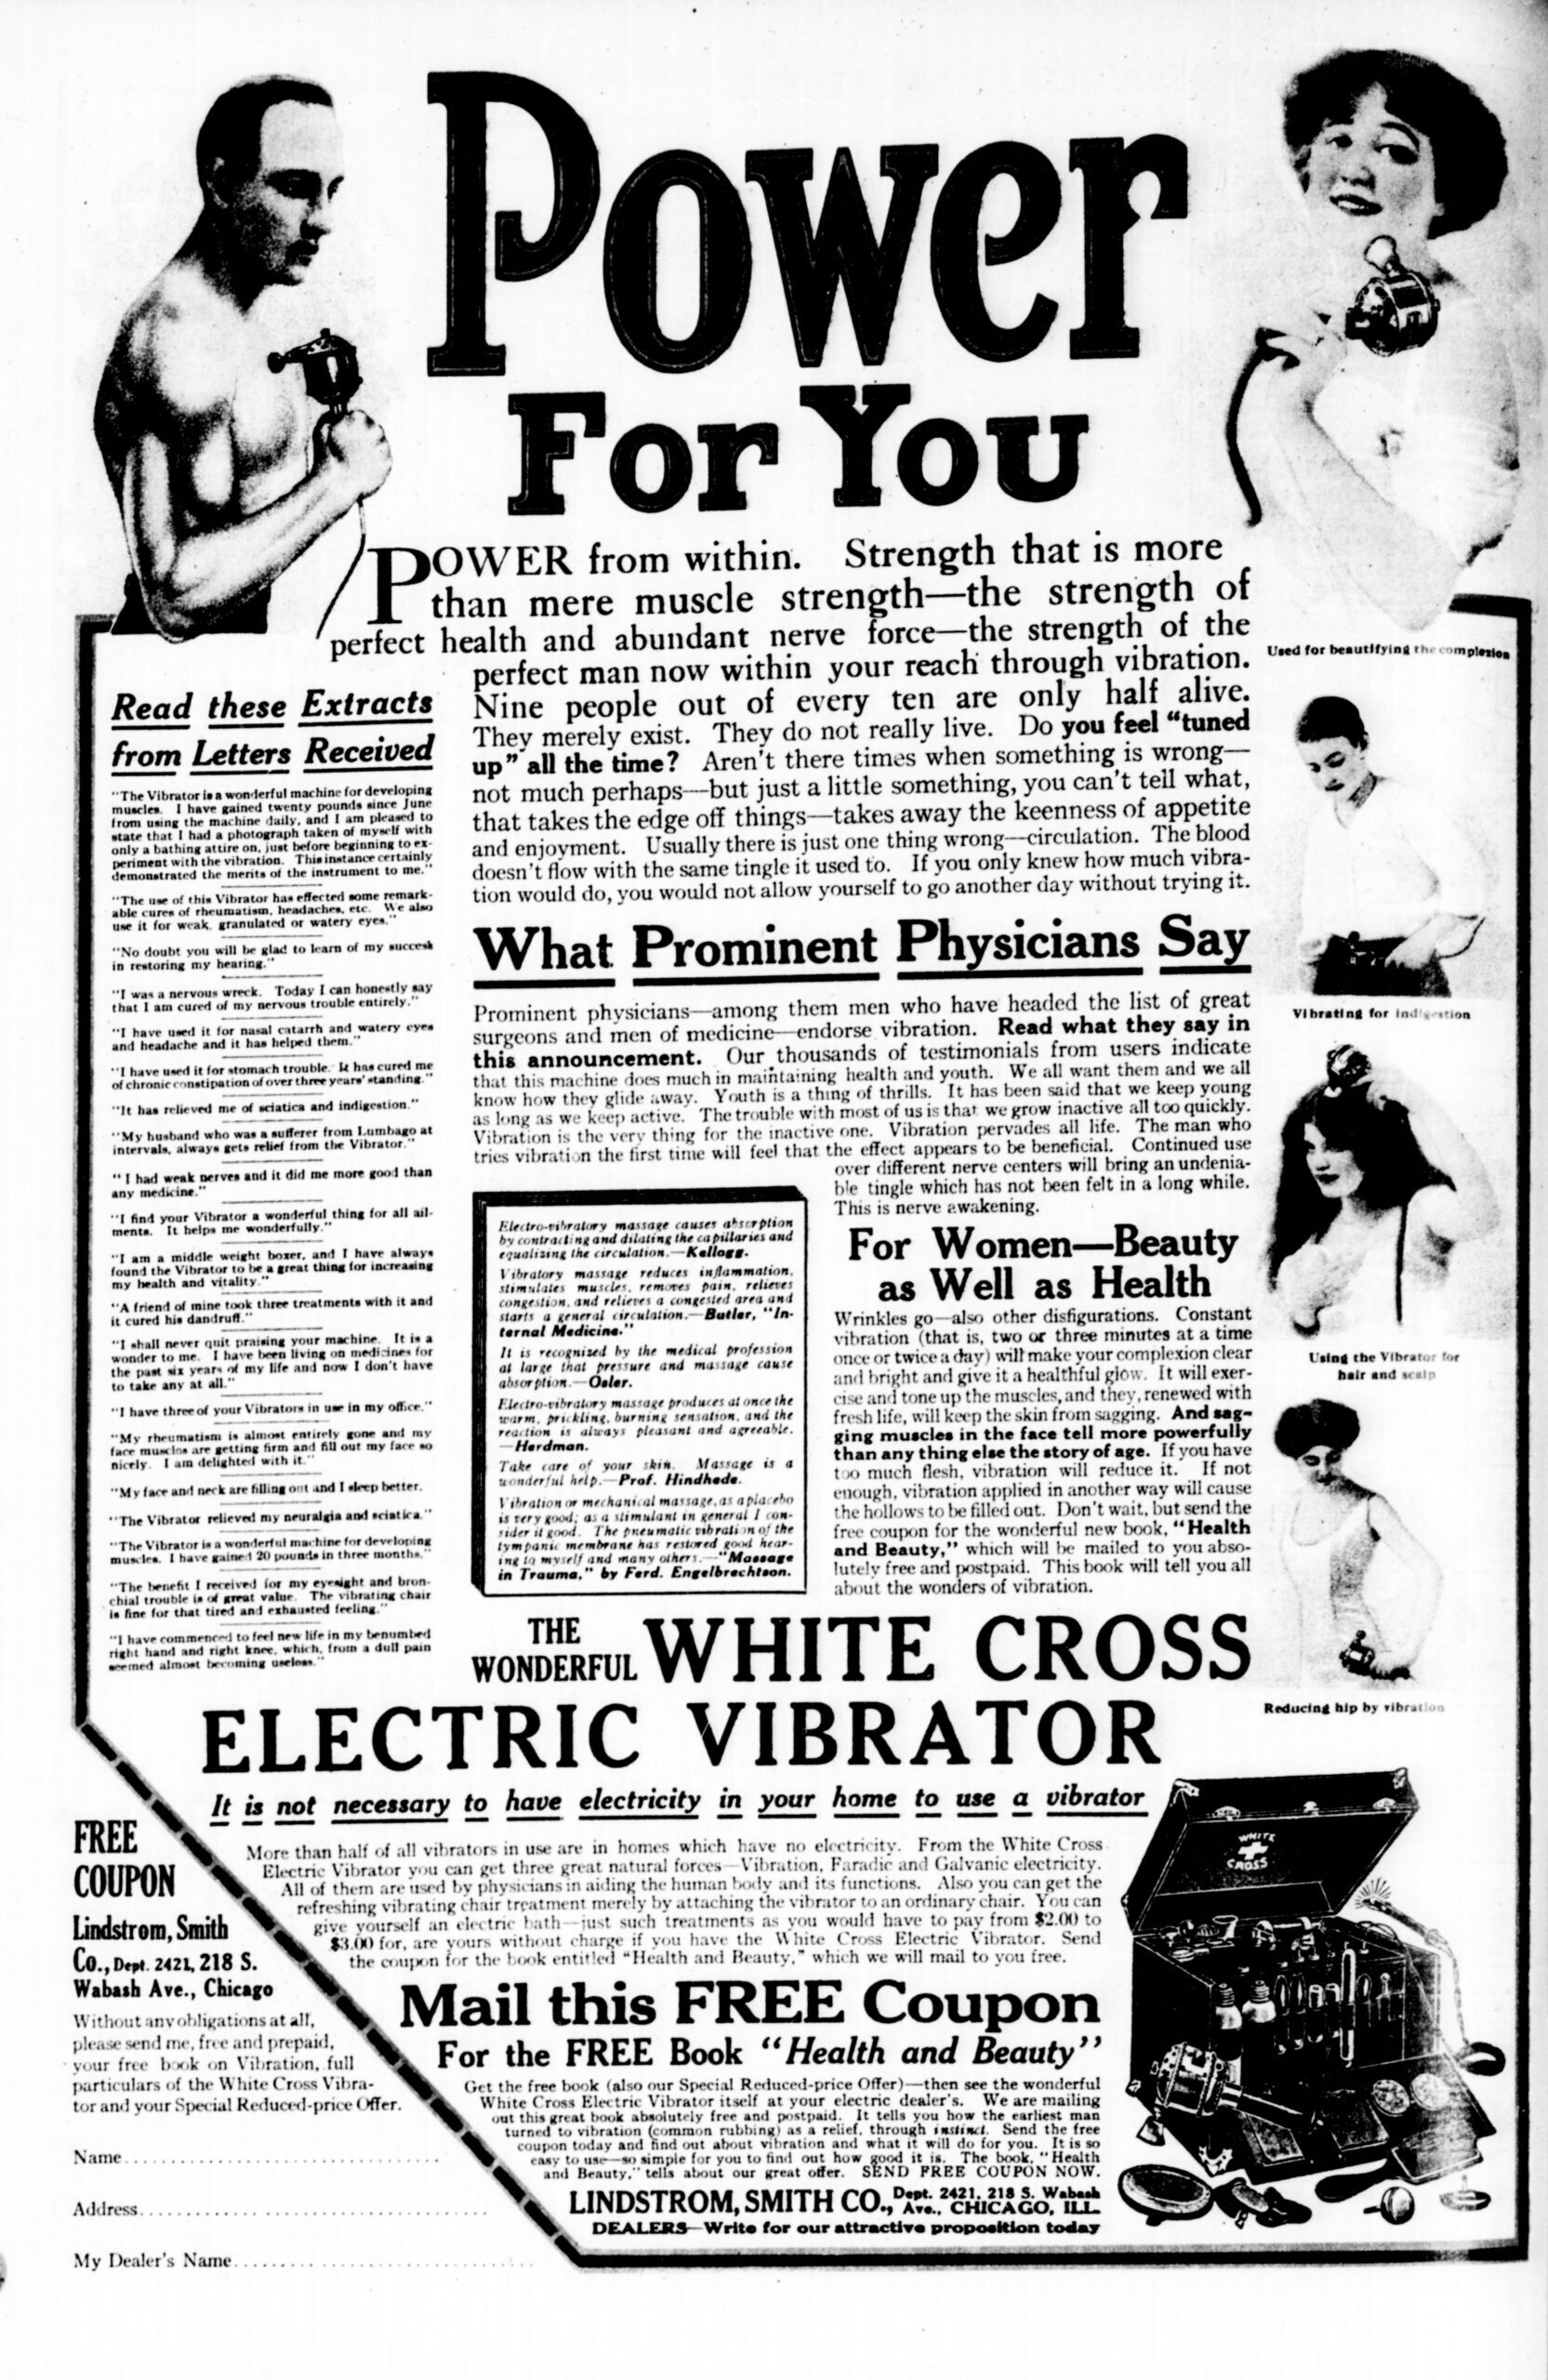 white_cross_electric_vibrator_ad_nyt_1913-8060276